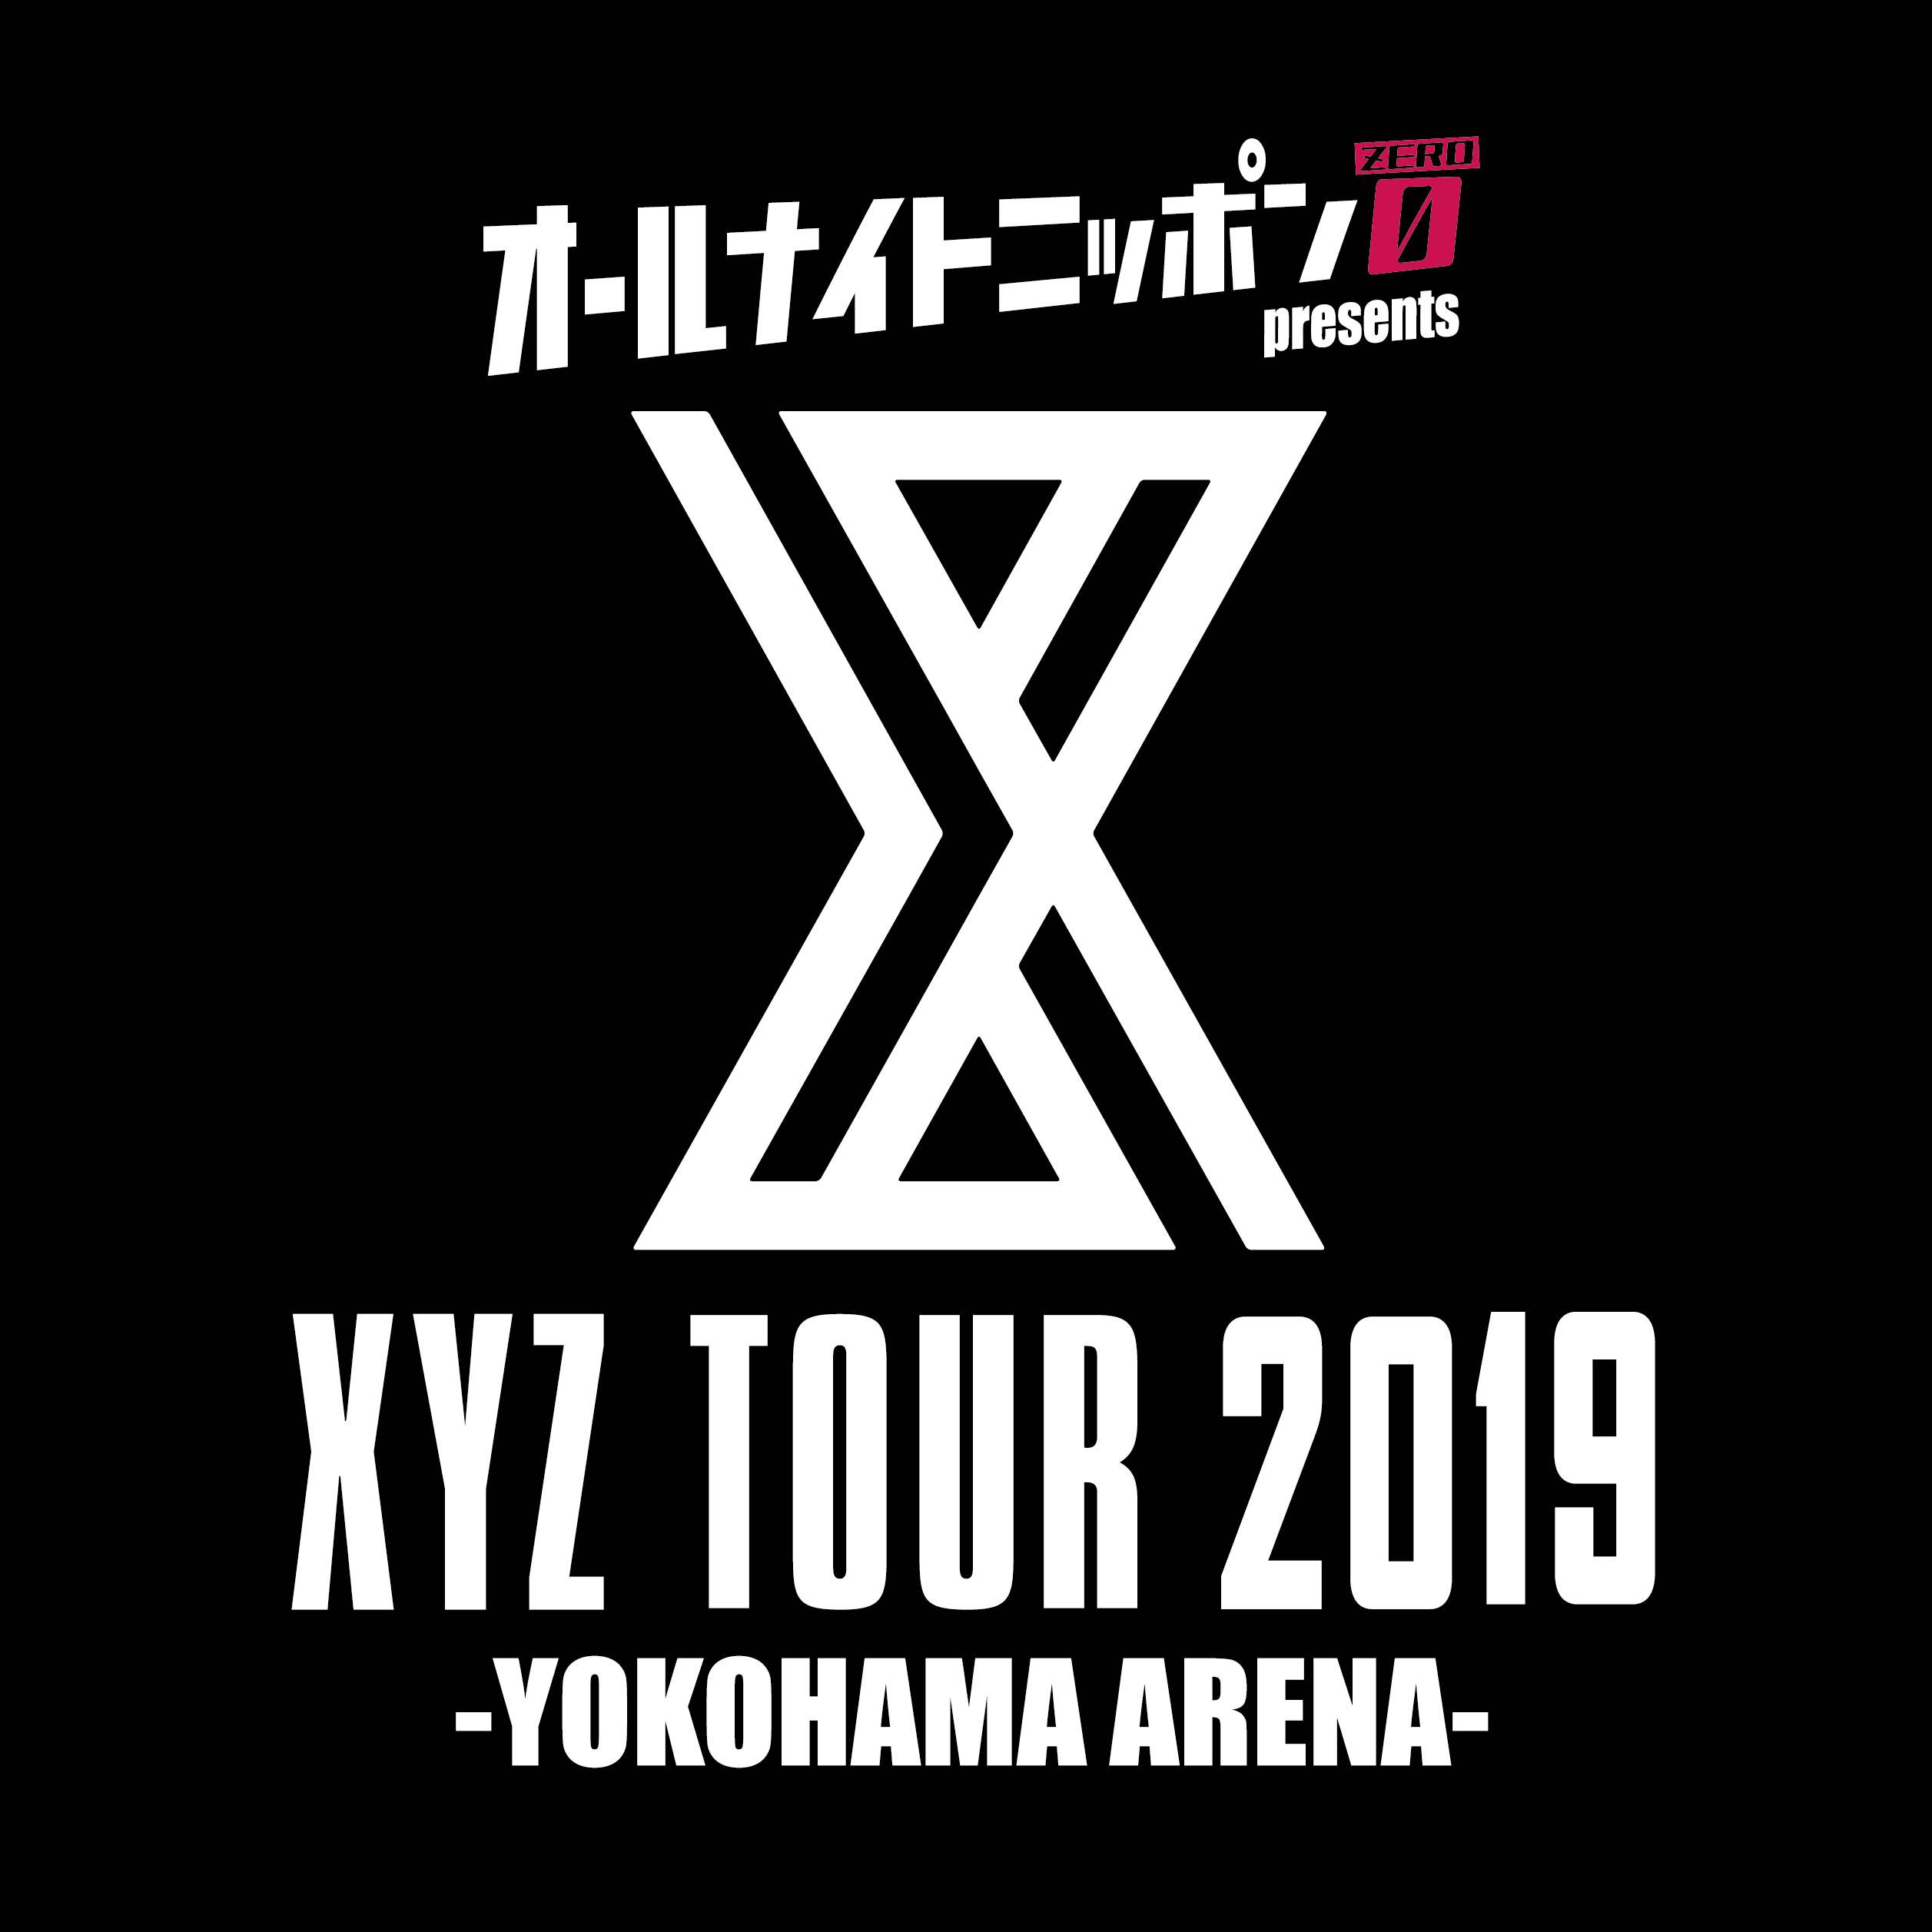 オールナイトニッポン0(ZERO)presents XYZ TOUR 2019 -YOKOHAMA ARENA-